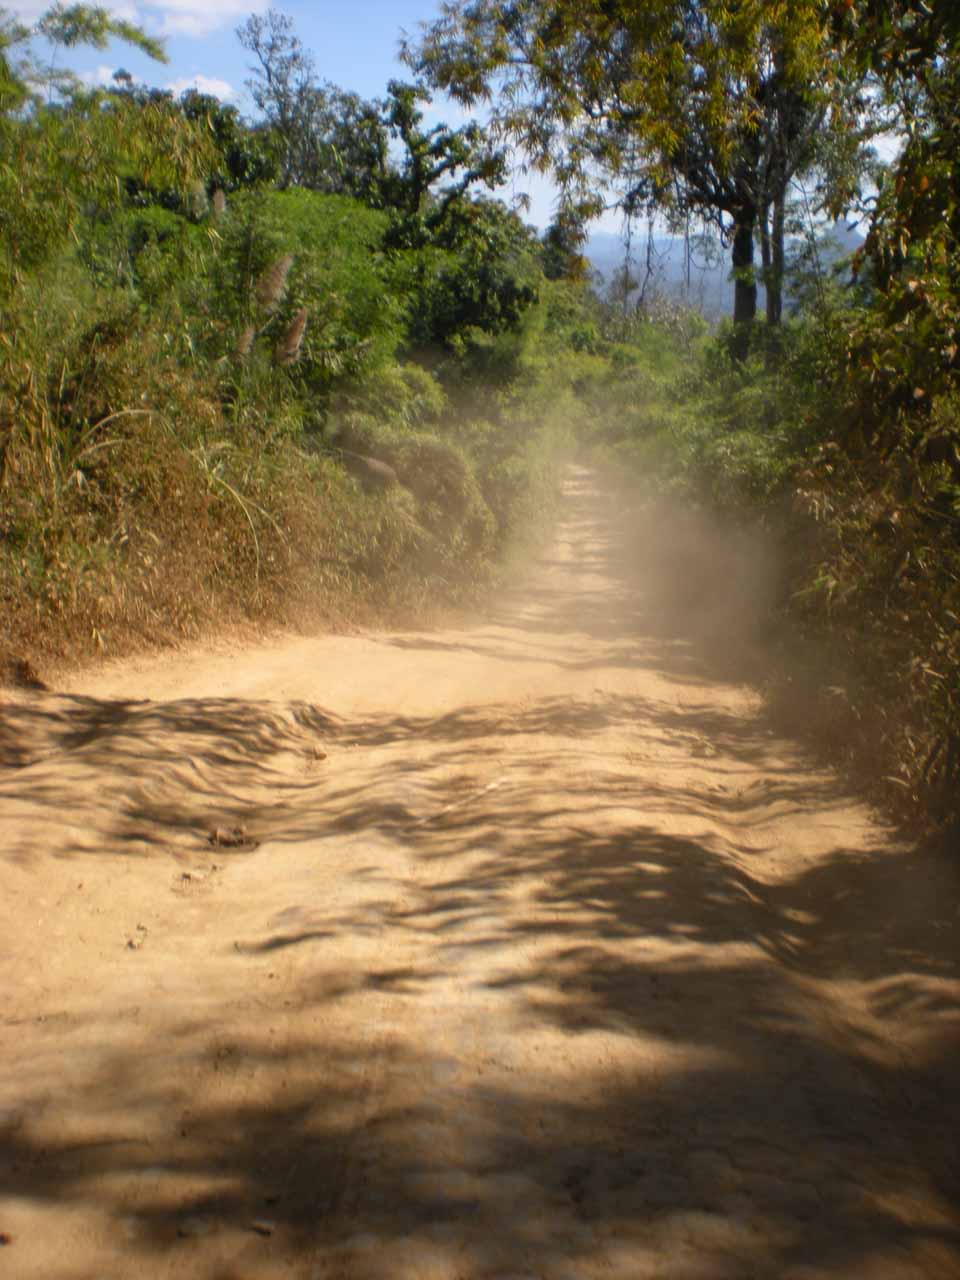 The road we had to take while riding the songthaew